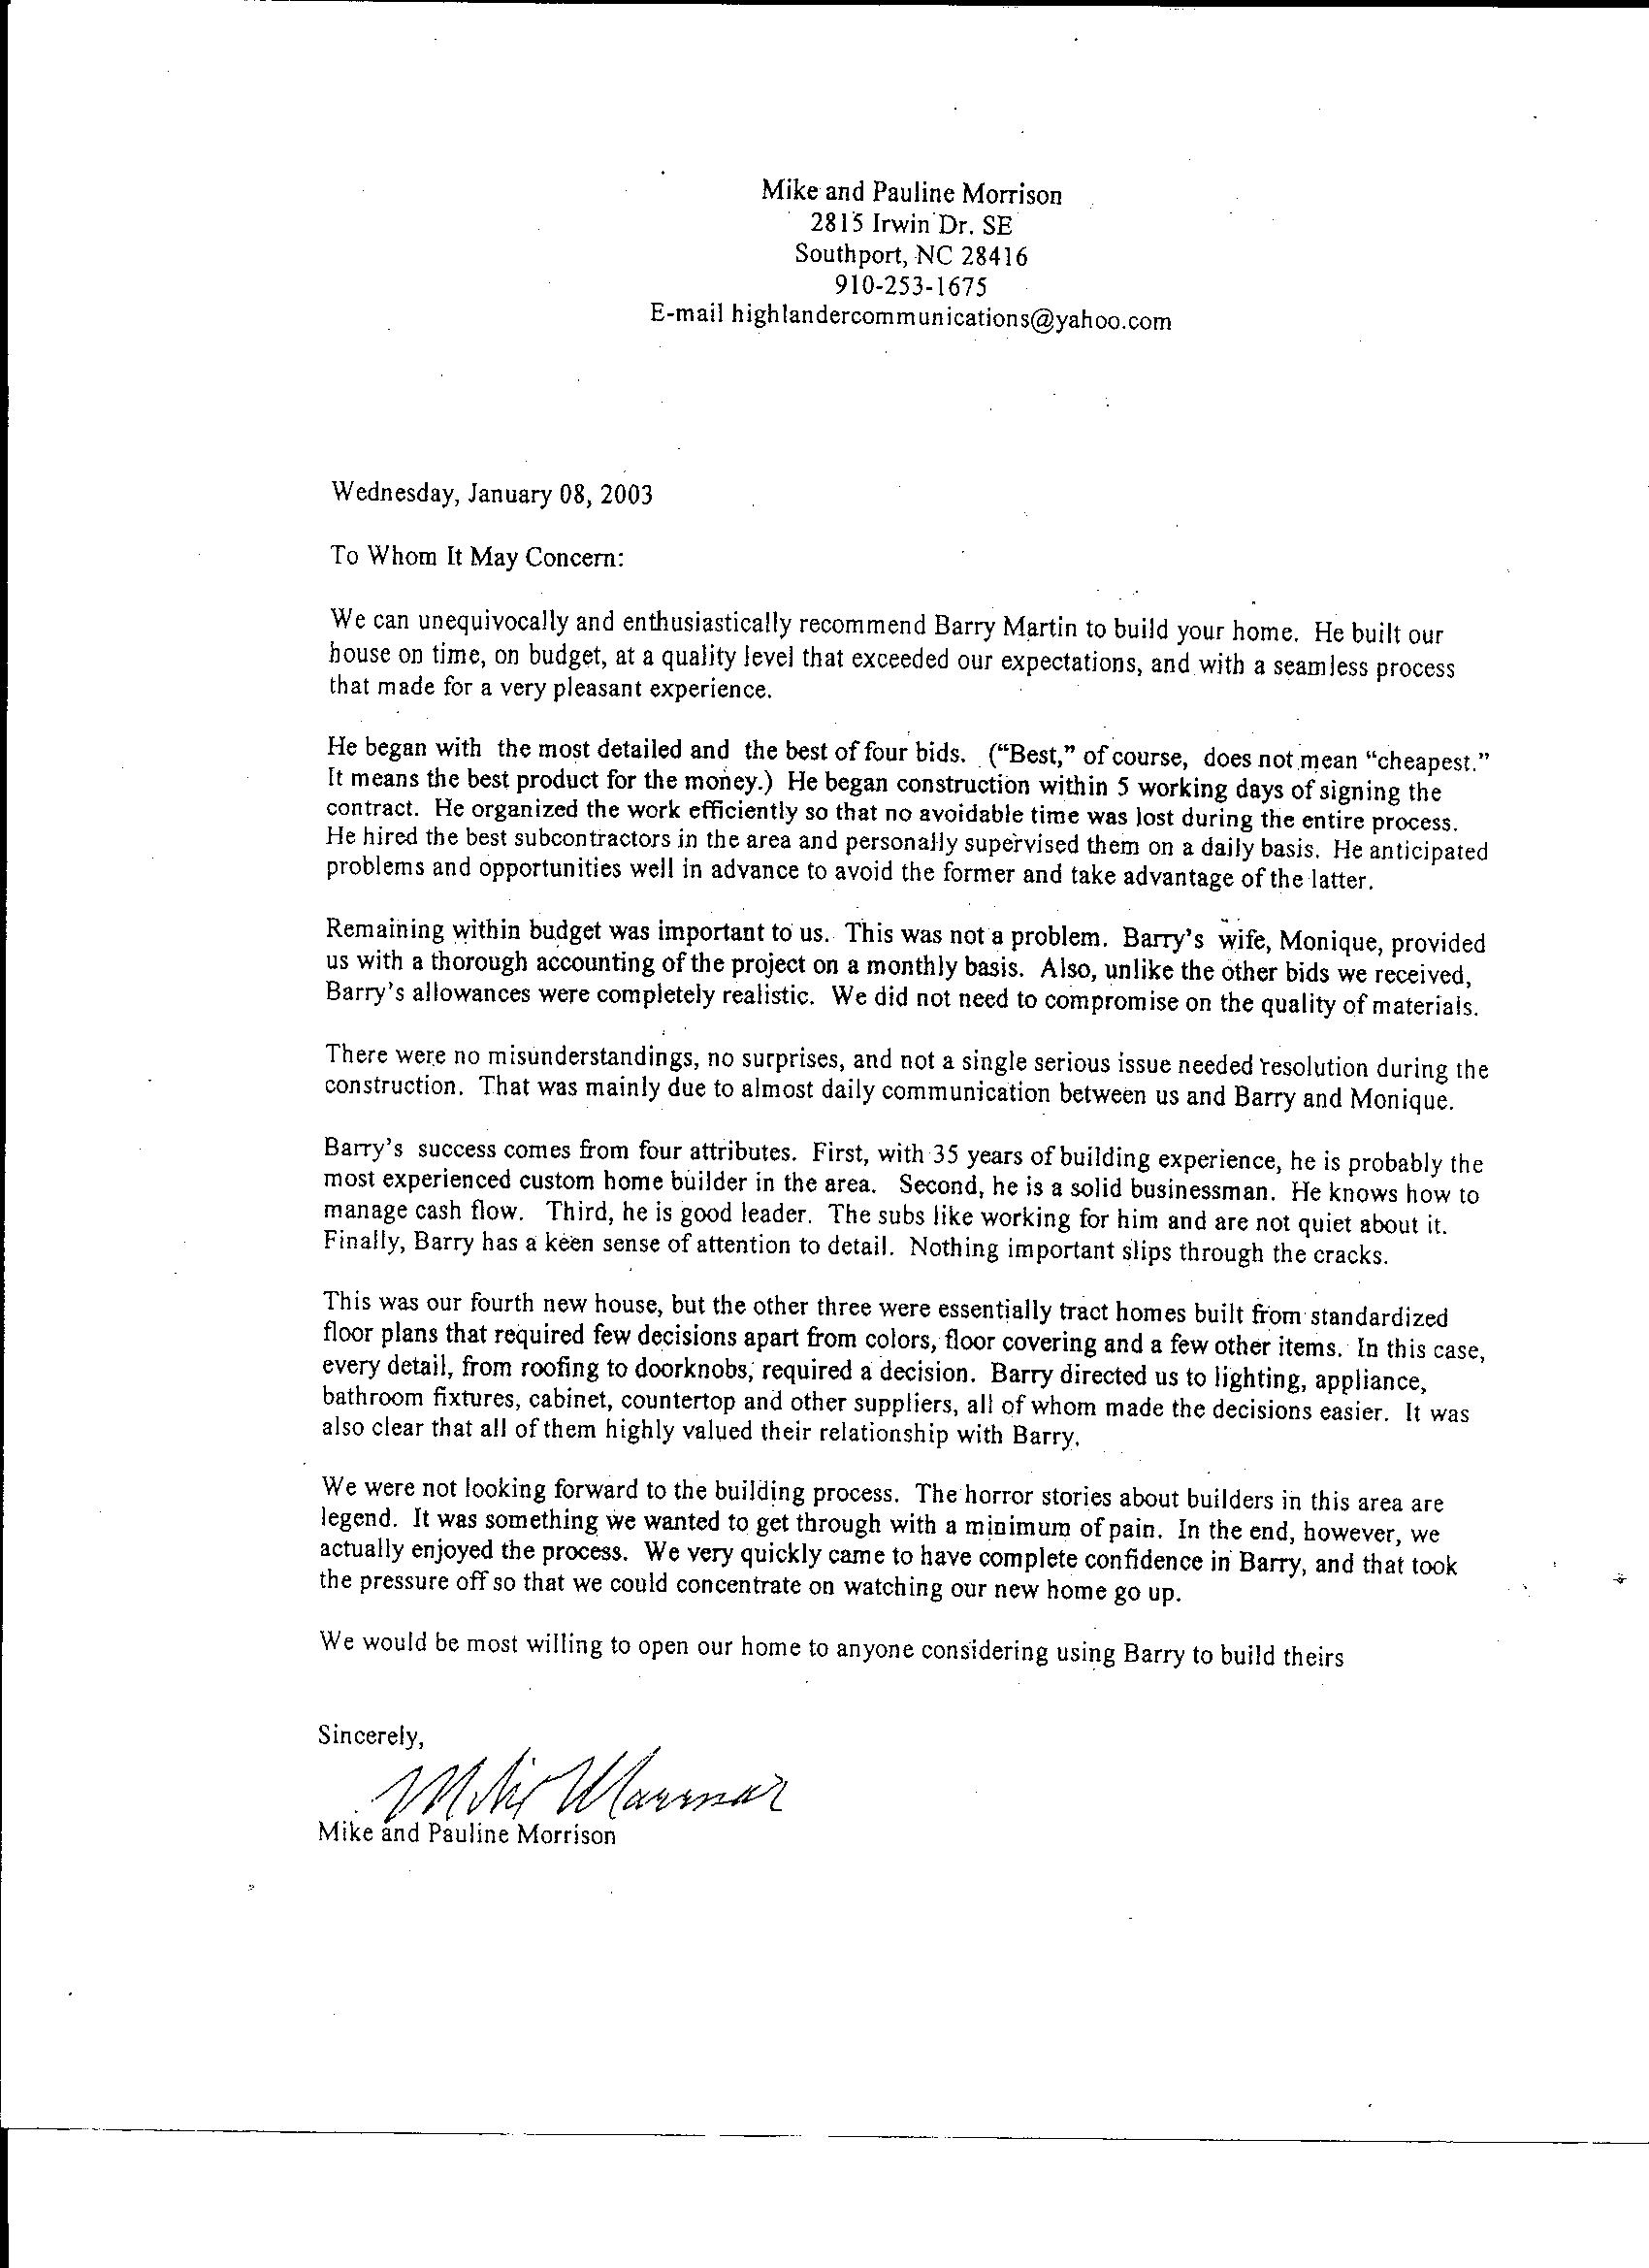 Mcpherson Testimonial Testimonials Southern Shores Development, Llc How To  End A Letter Using Sincerely Solution